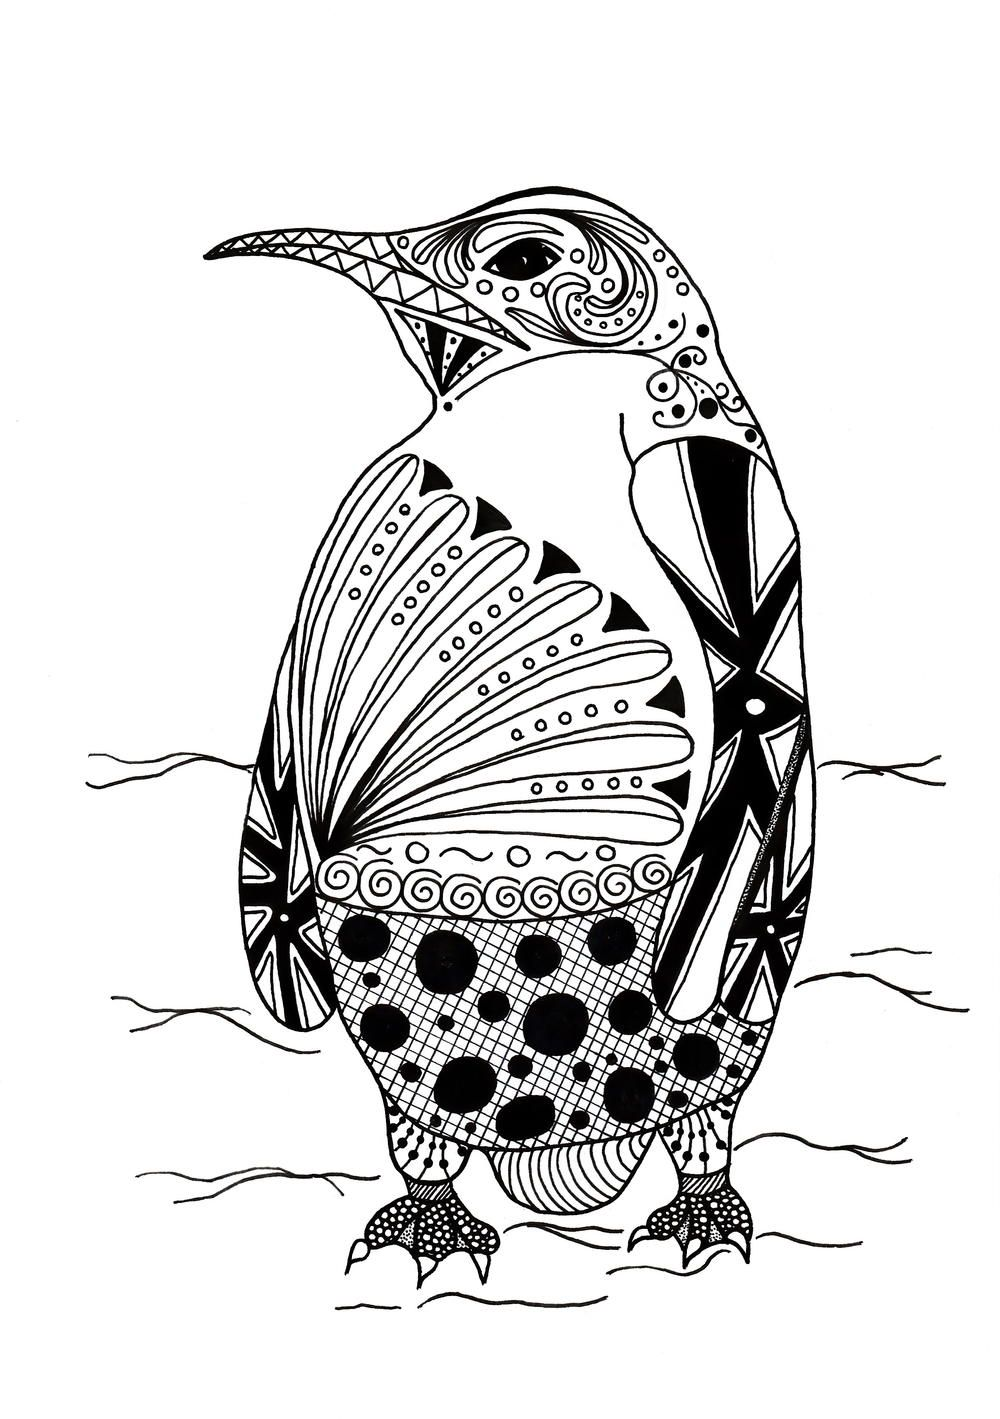 Intricate Penguin Adult Coloring Page Animal coloring